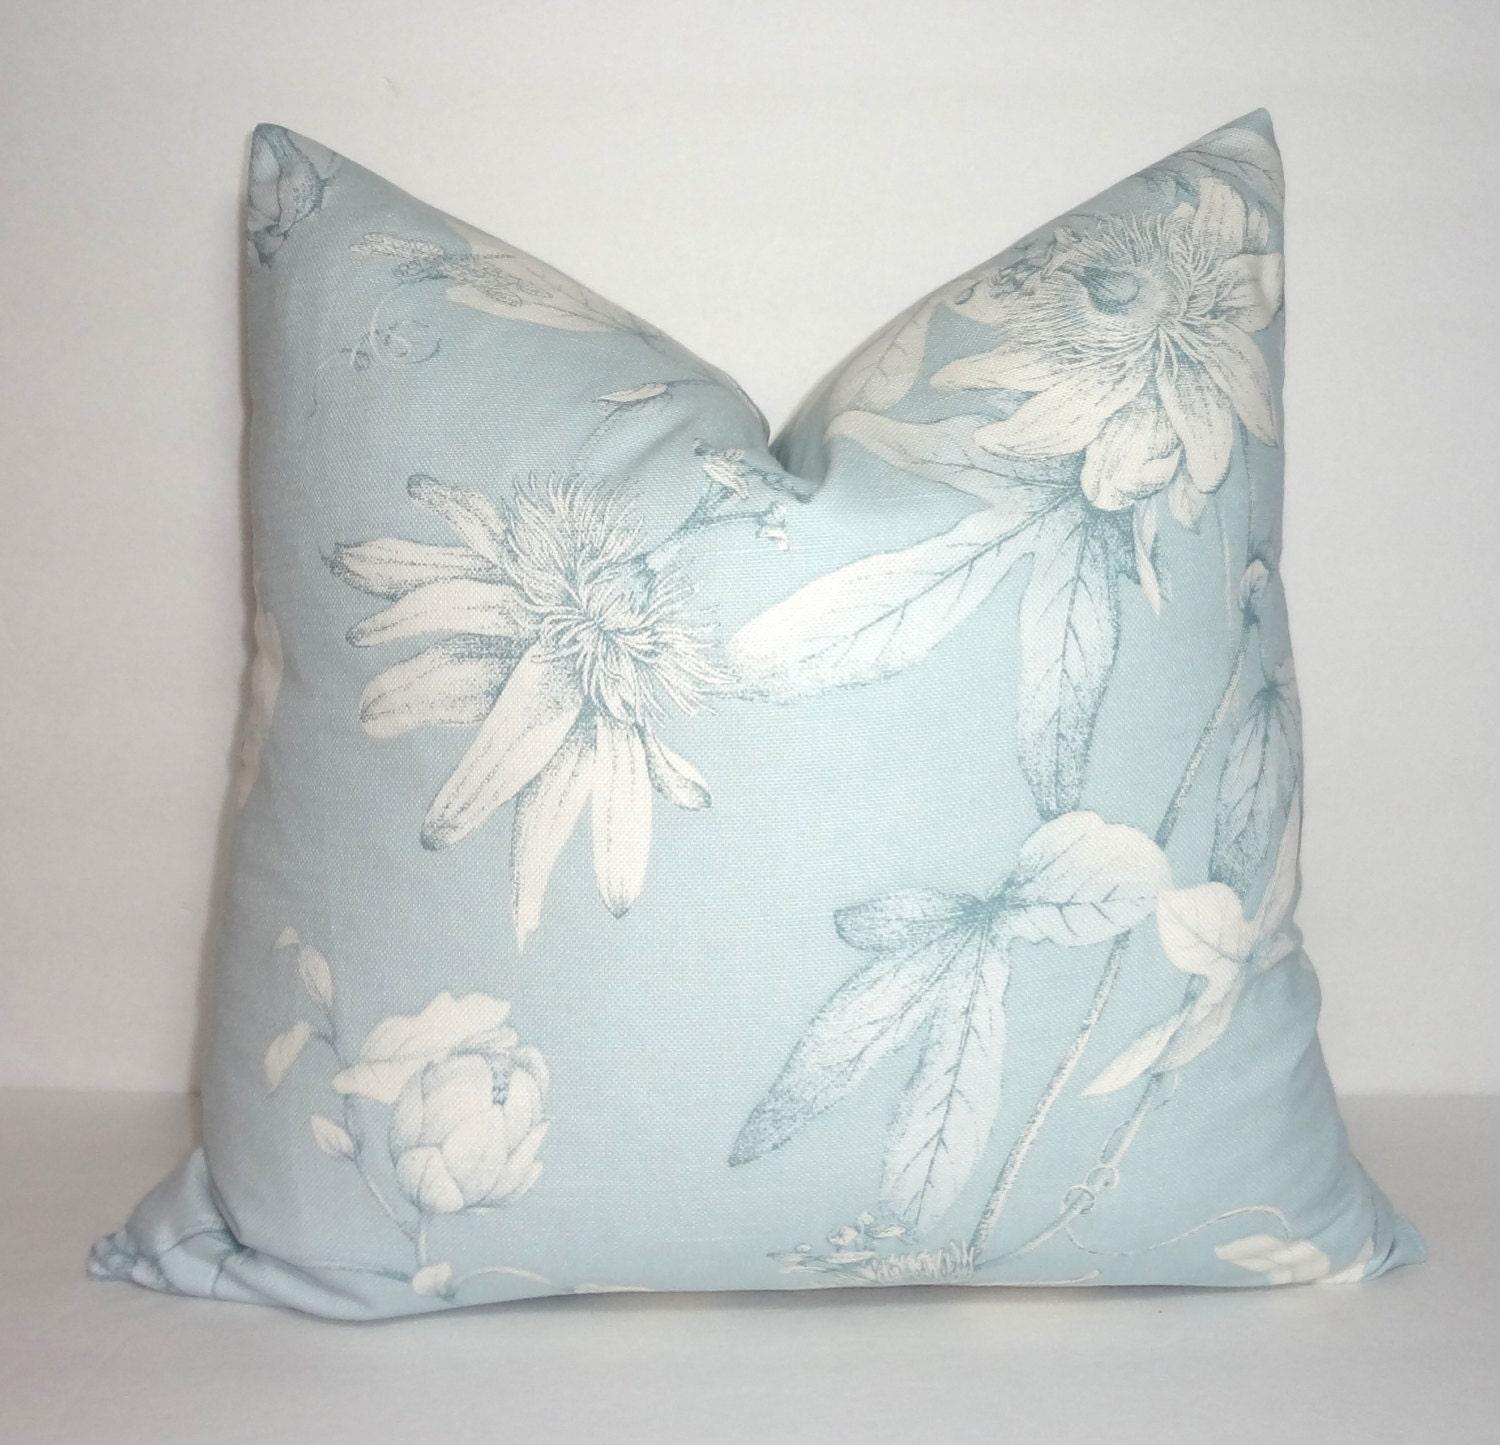 Light Blue Patterned Throw Pillow : Decorative Pillow Light Blue Floral Print Pillow Cover Blue